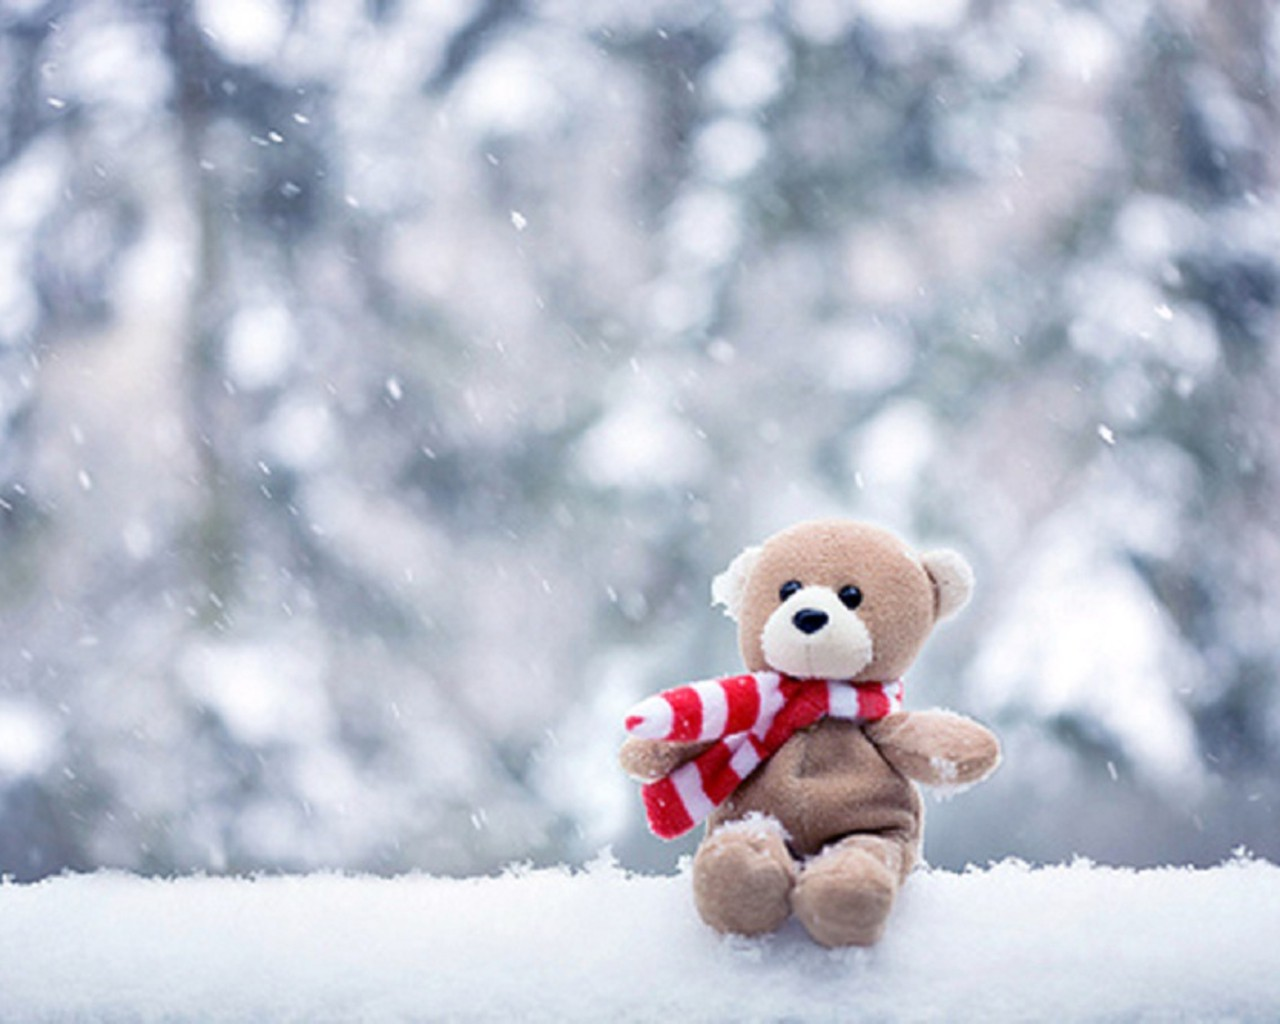 teddy bear on snow fall wallpaper - latest hd wallpaper